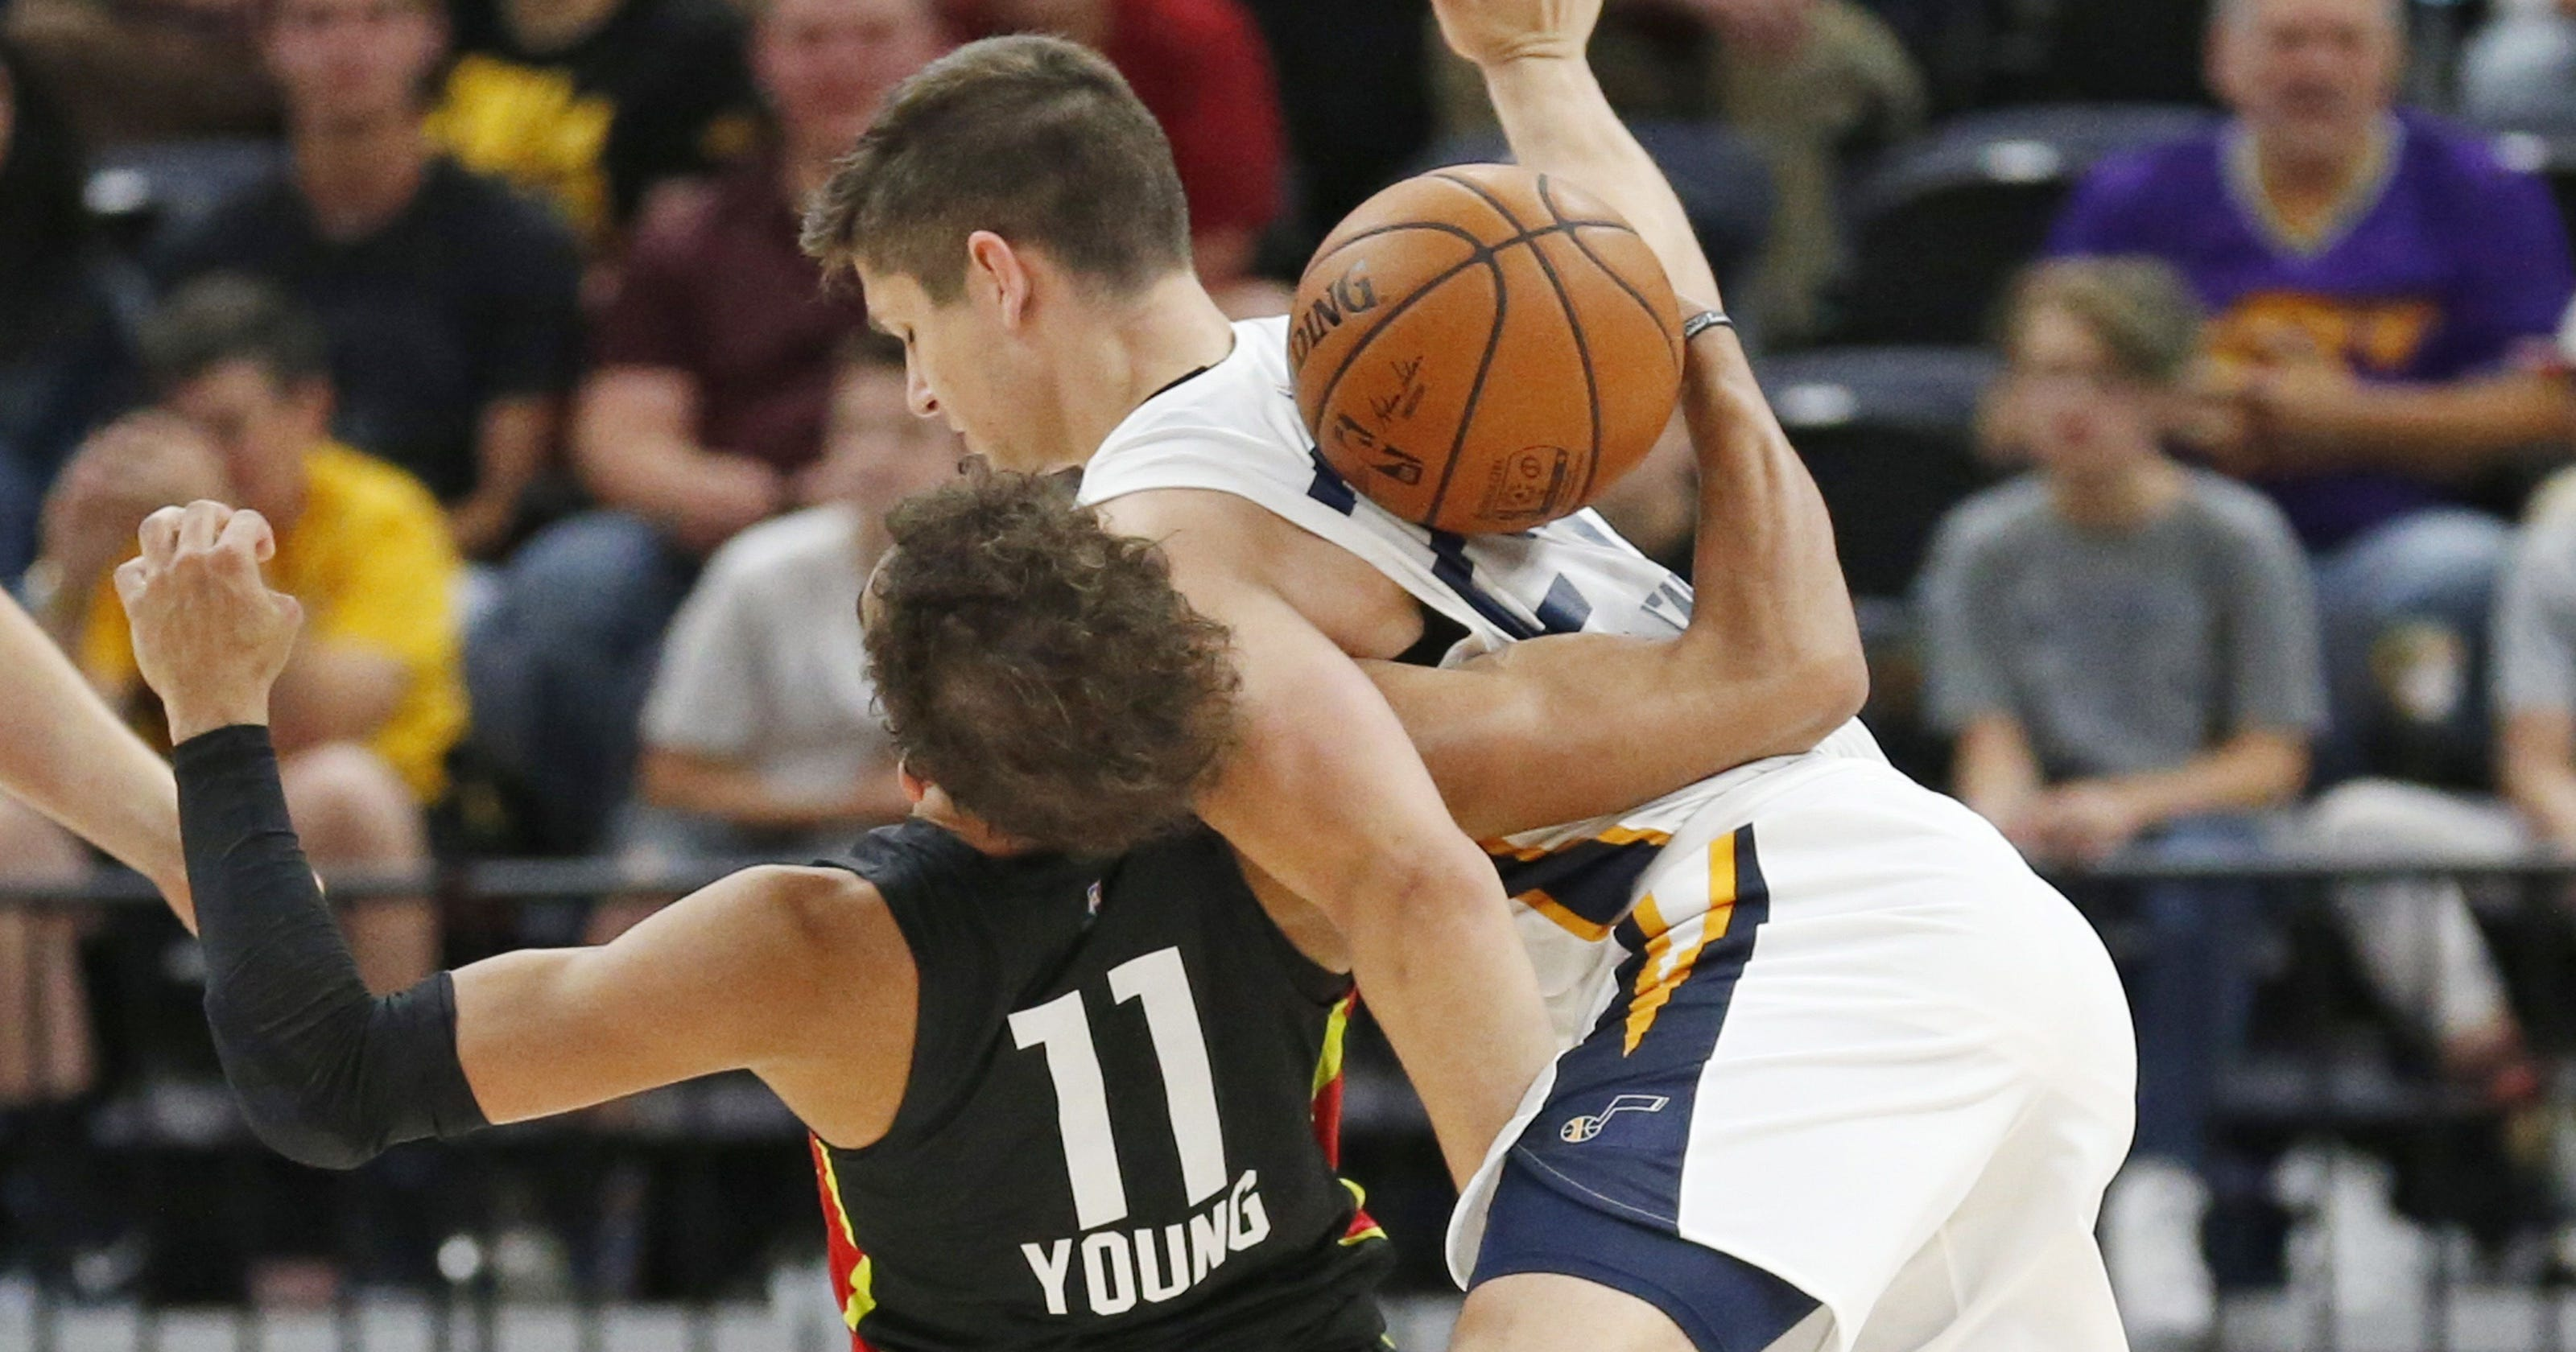 912c5405c Rookies Grayson Allen and Trae Young scuffle during Summer League game